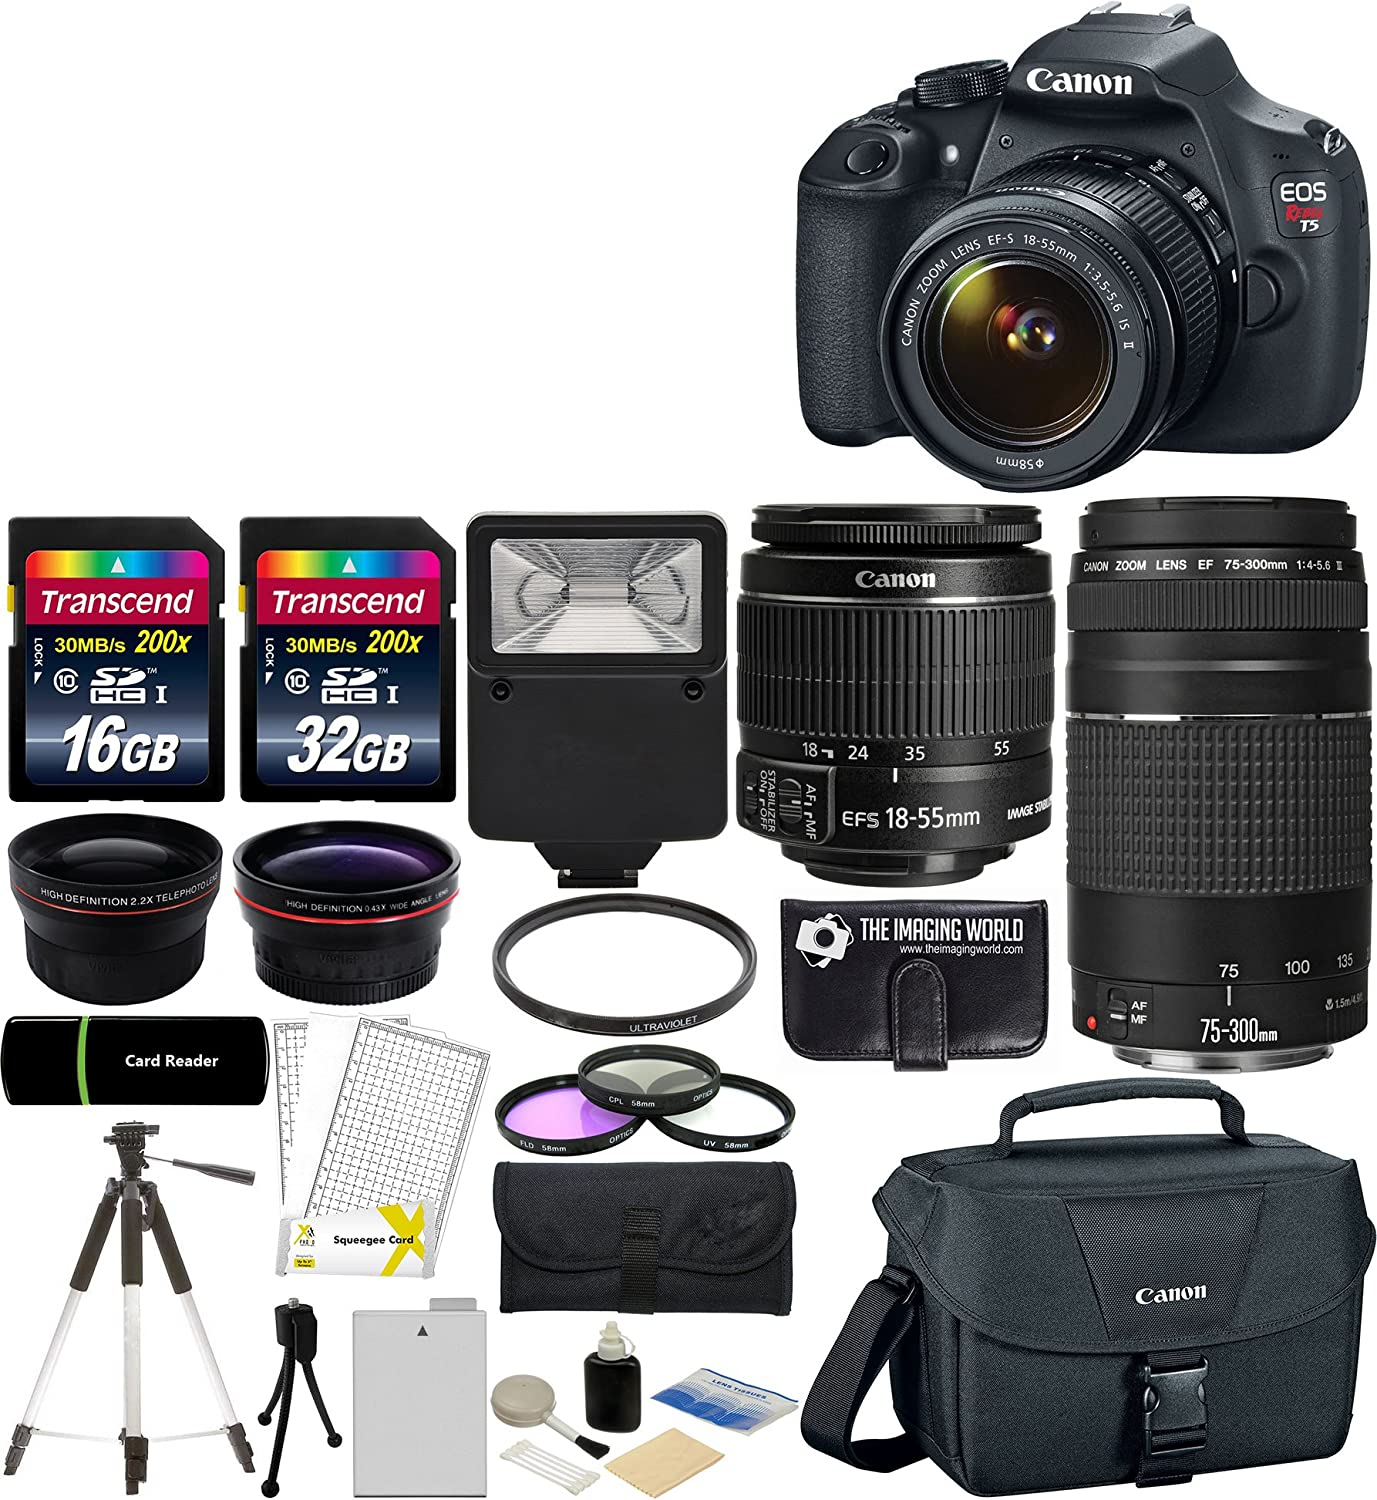 Canon EOS Rebel T5 18MP EF-S Digital SLR Camera USA warranty with canon EF-S 18-55mm f/3.5-5.6 IS II Zoom Lens & EF 75 ...